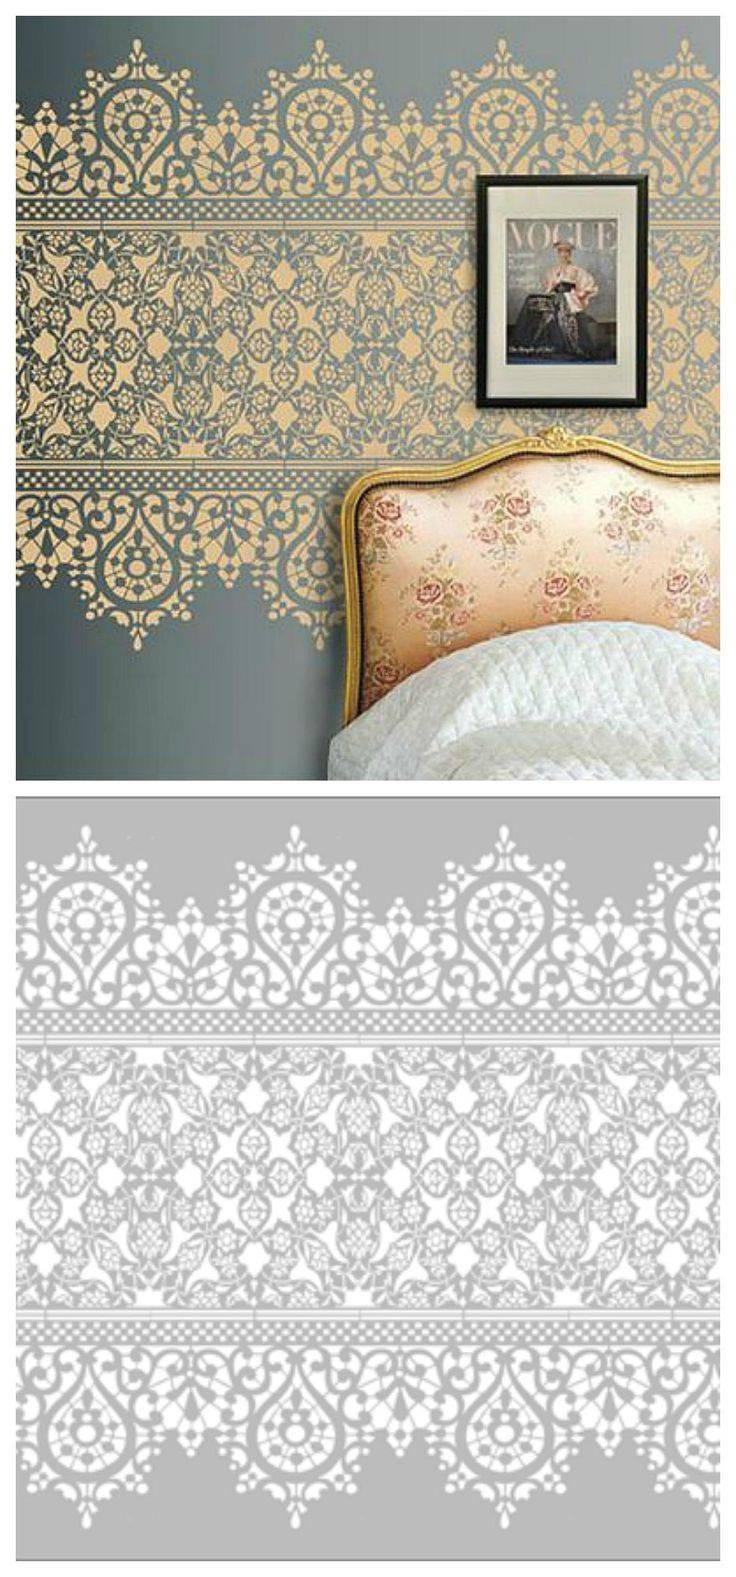 25+ Unique Wall Stenciling Ideas On Pinterest | Diy Stenciled Pertaining To Recent Space Stencils For Walls (View 7 of 20)